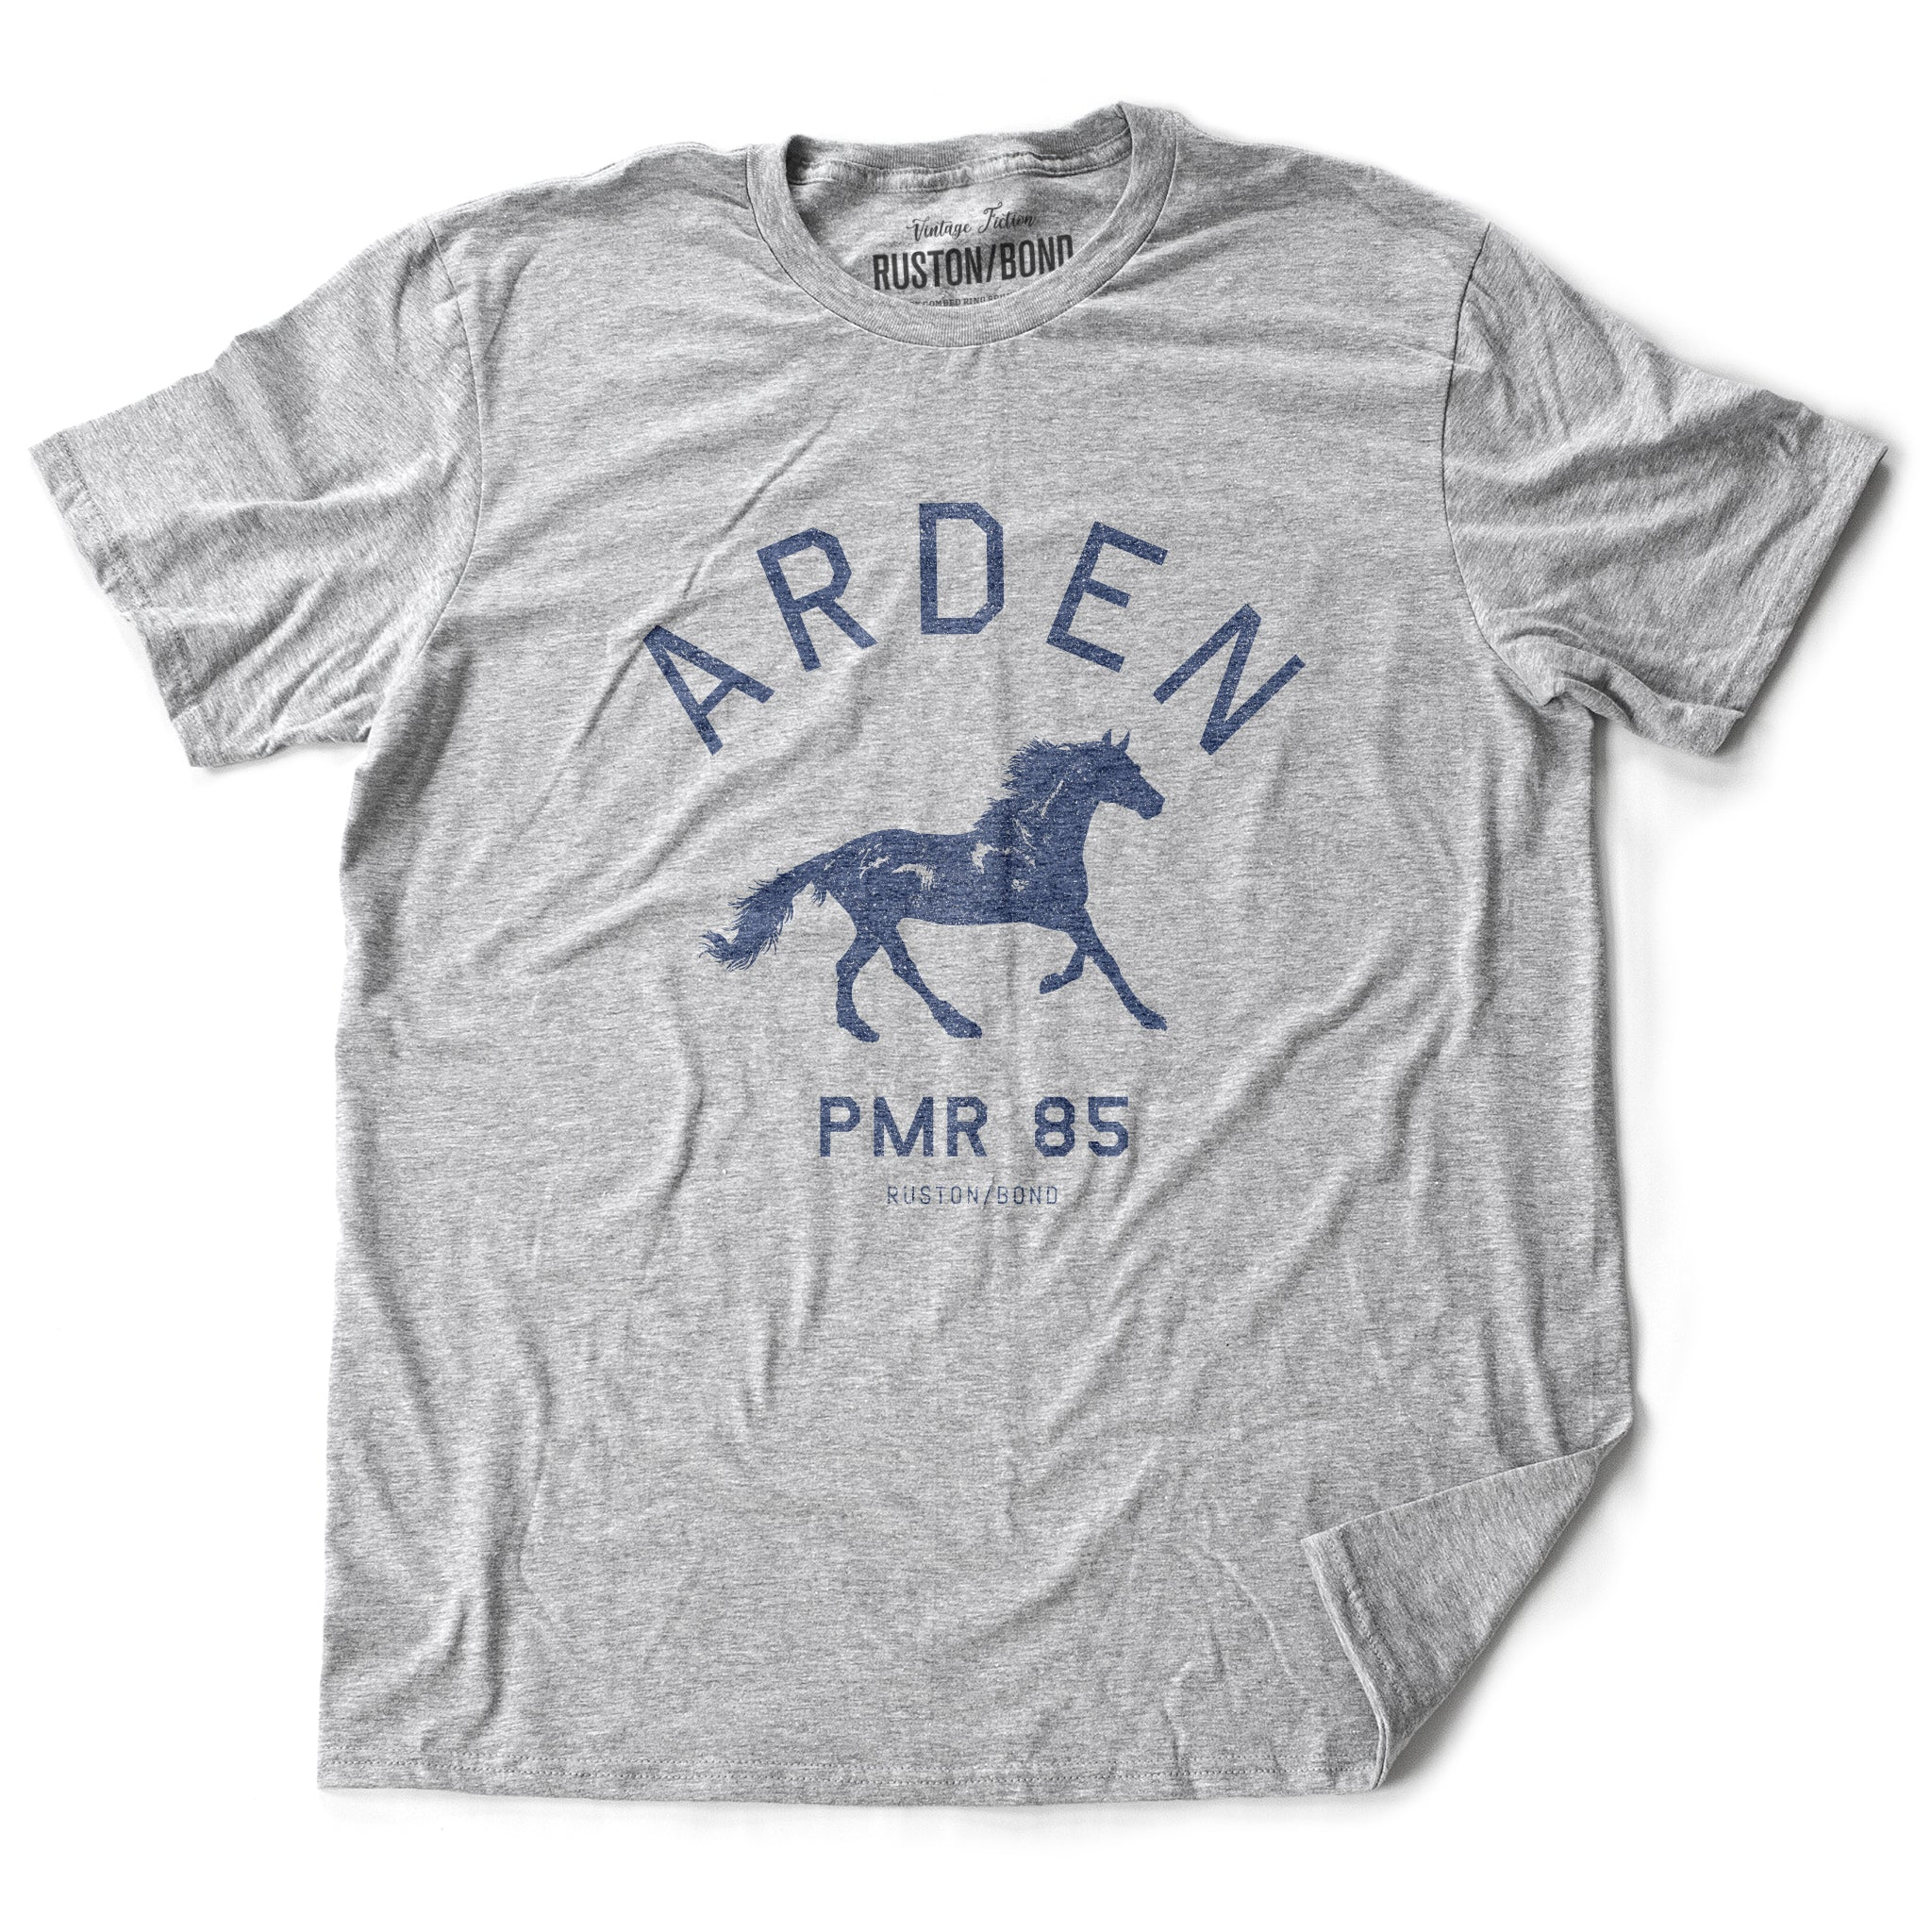 Athletic Gray vintage, retro-inspired fashion t-shirt, with elegant classic typography and a running horse with an equestrian, horse-riding theme. From wolfsaint.net